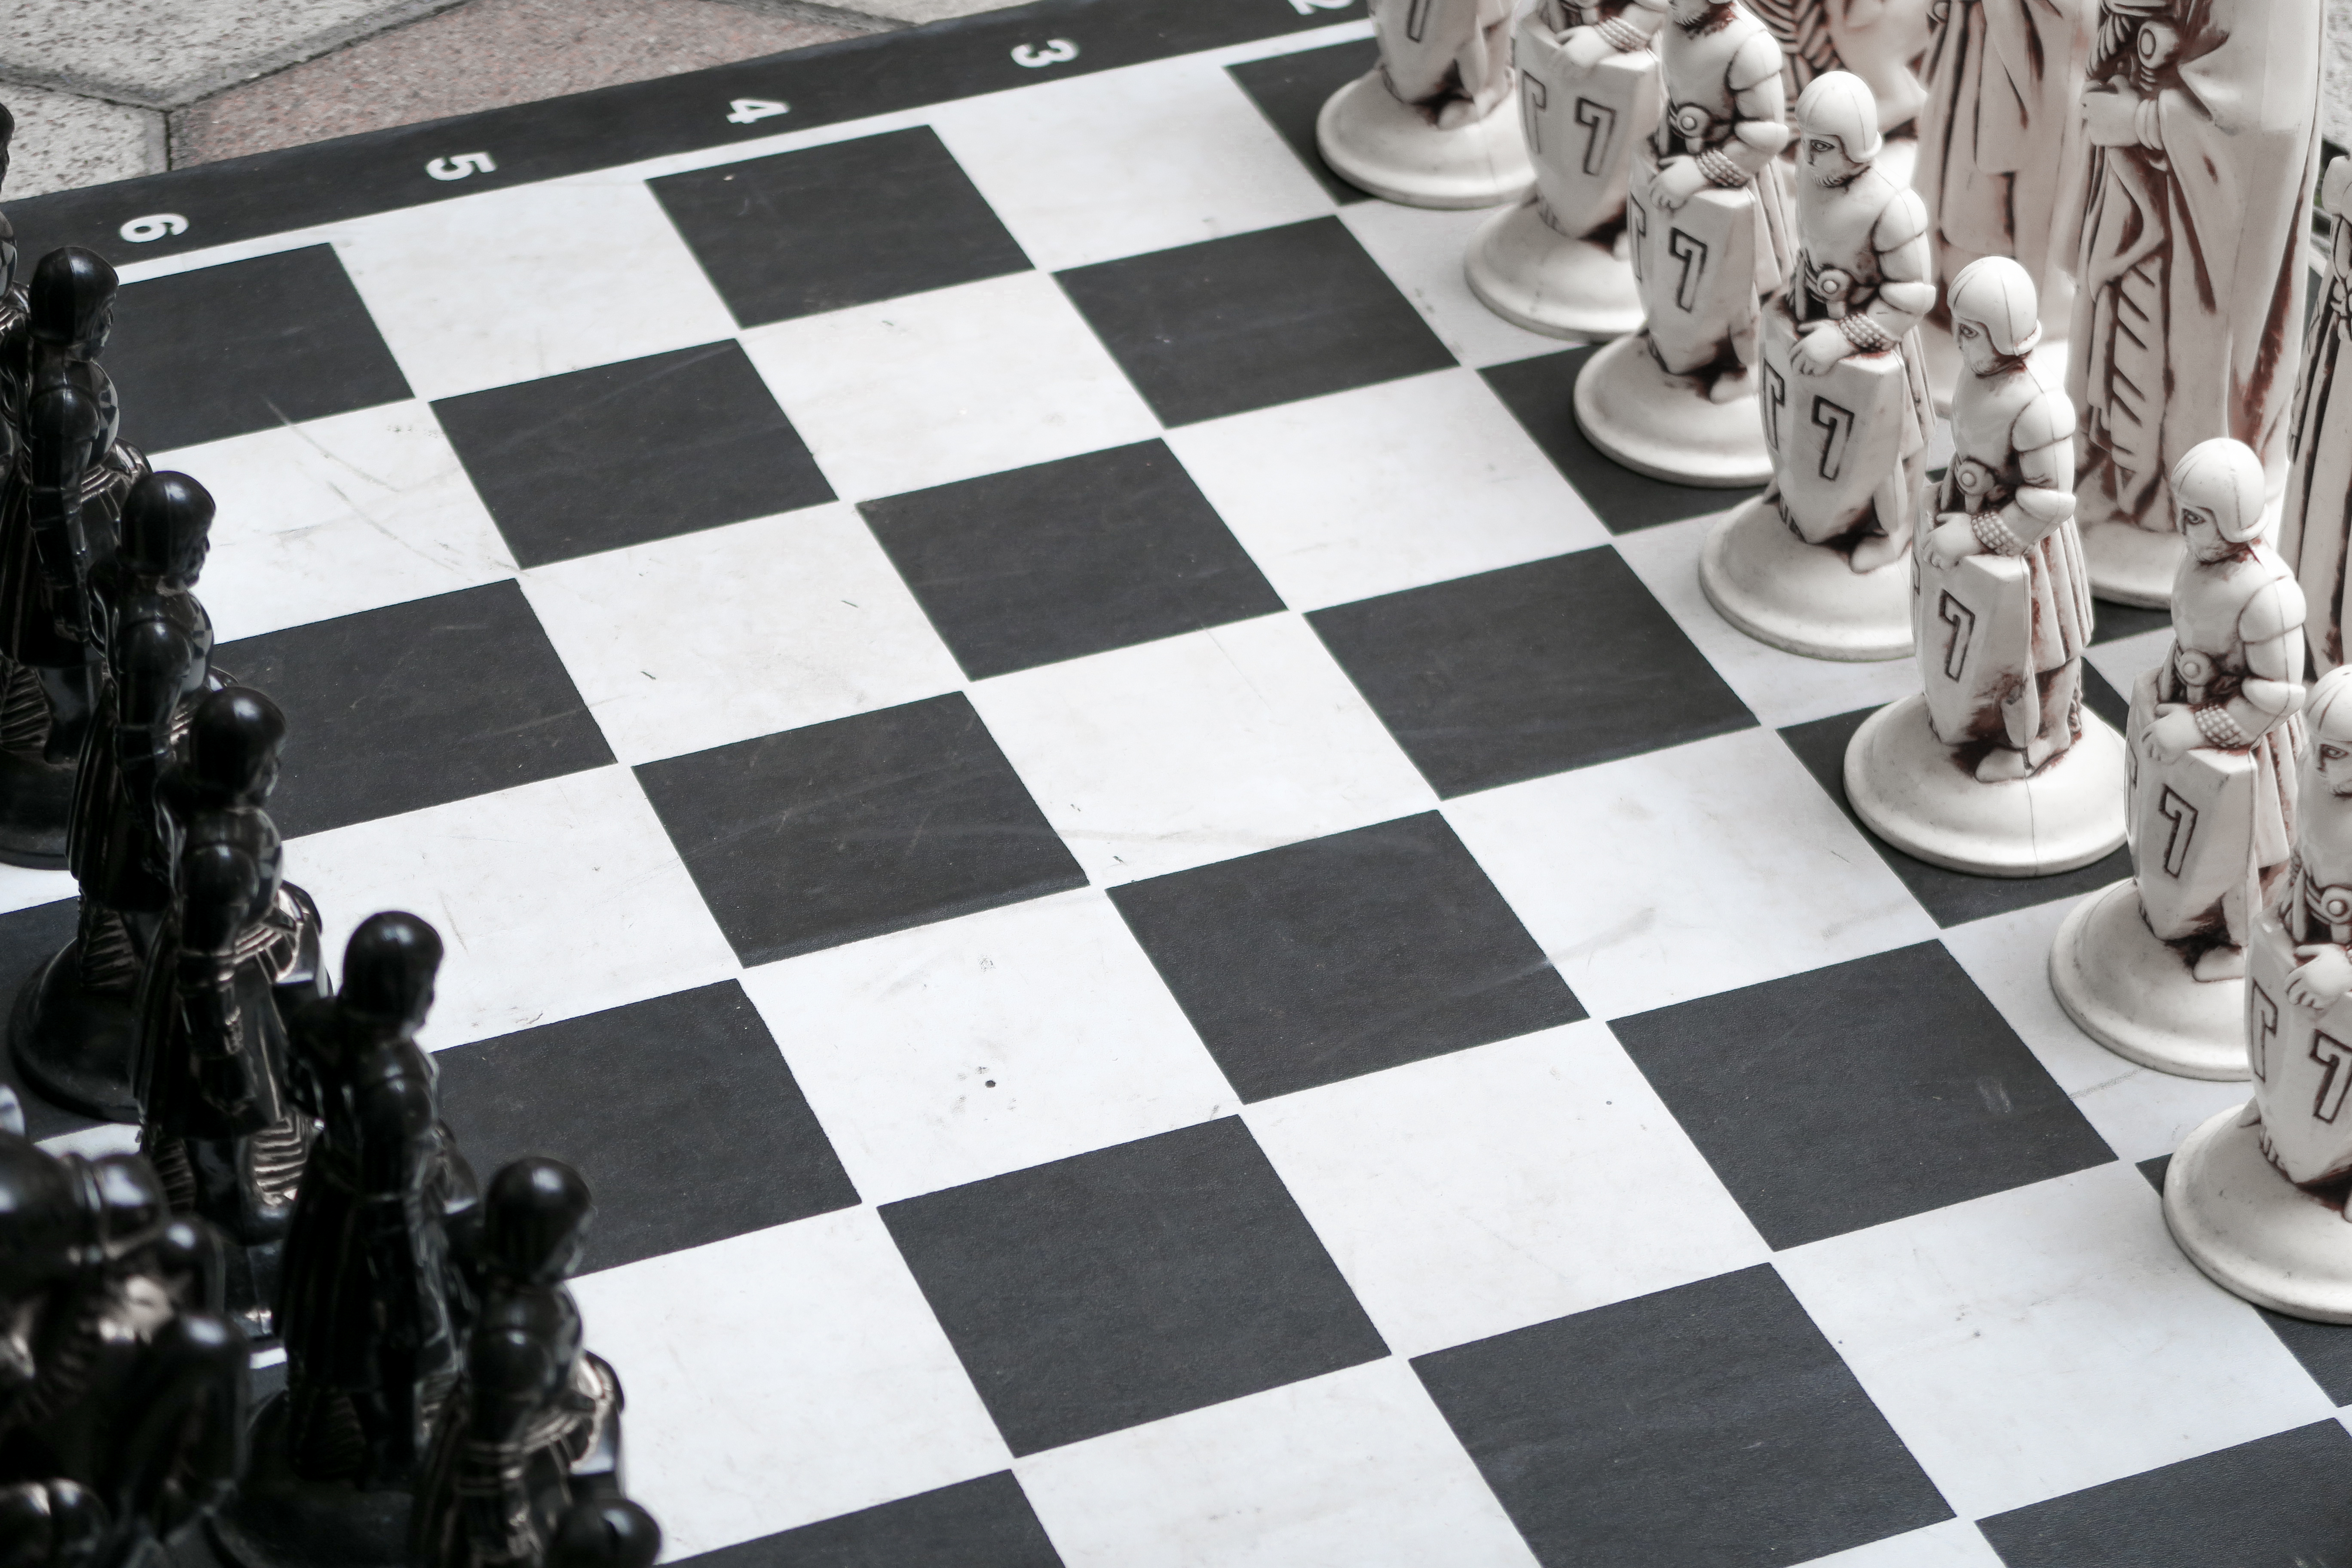 Rendering the chess board – declaratively. Part 1.